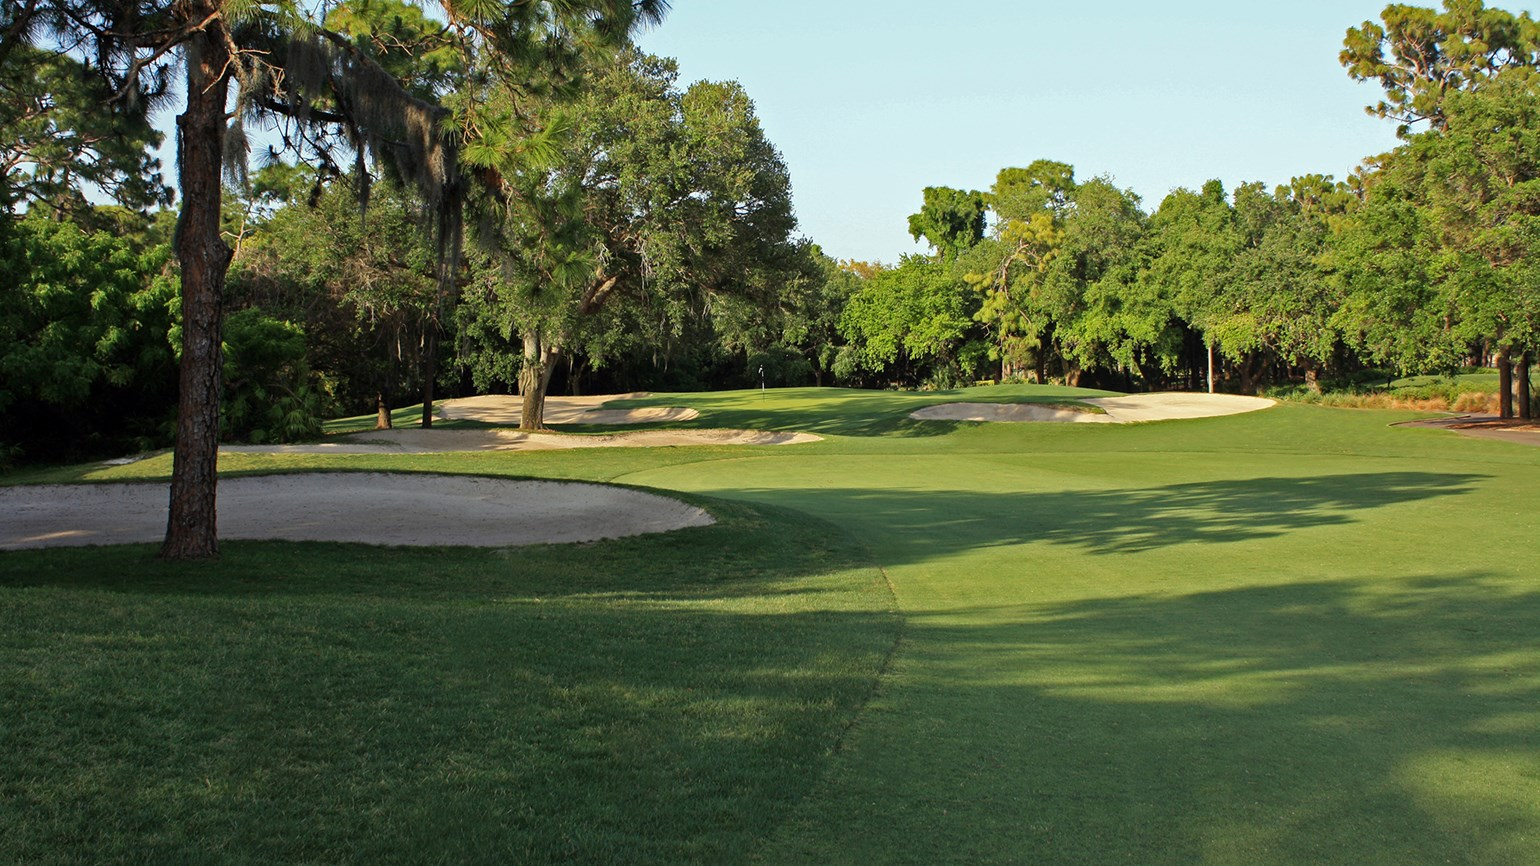 Face-lift complete, North Course reopens at Innisbrook